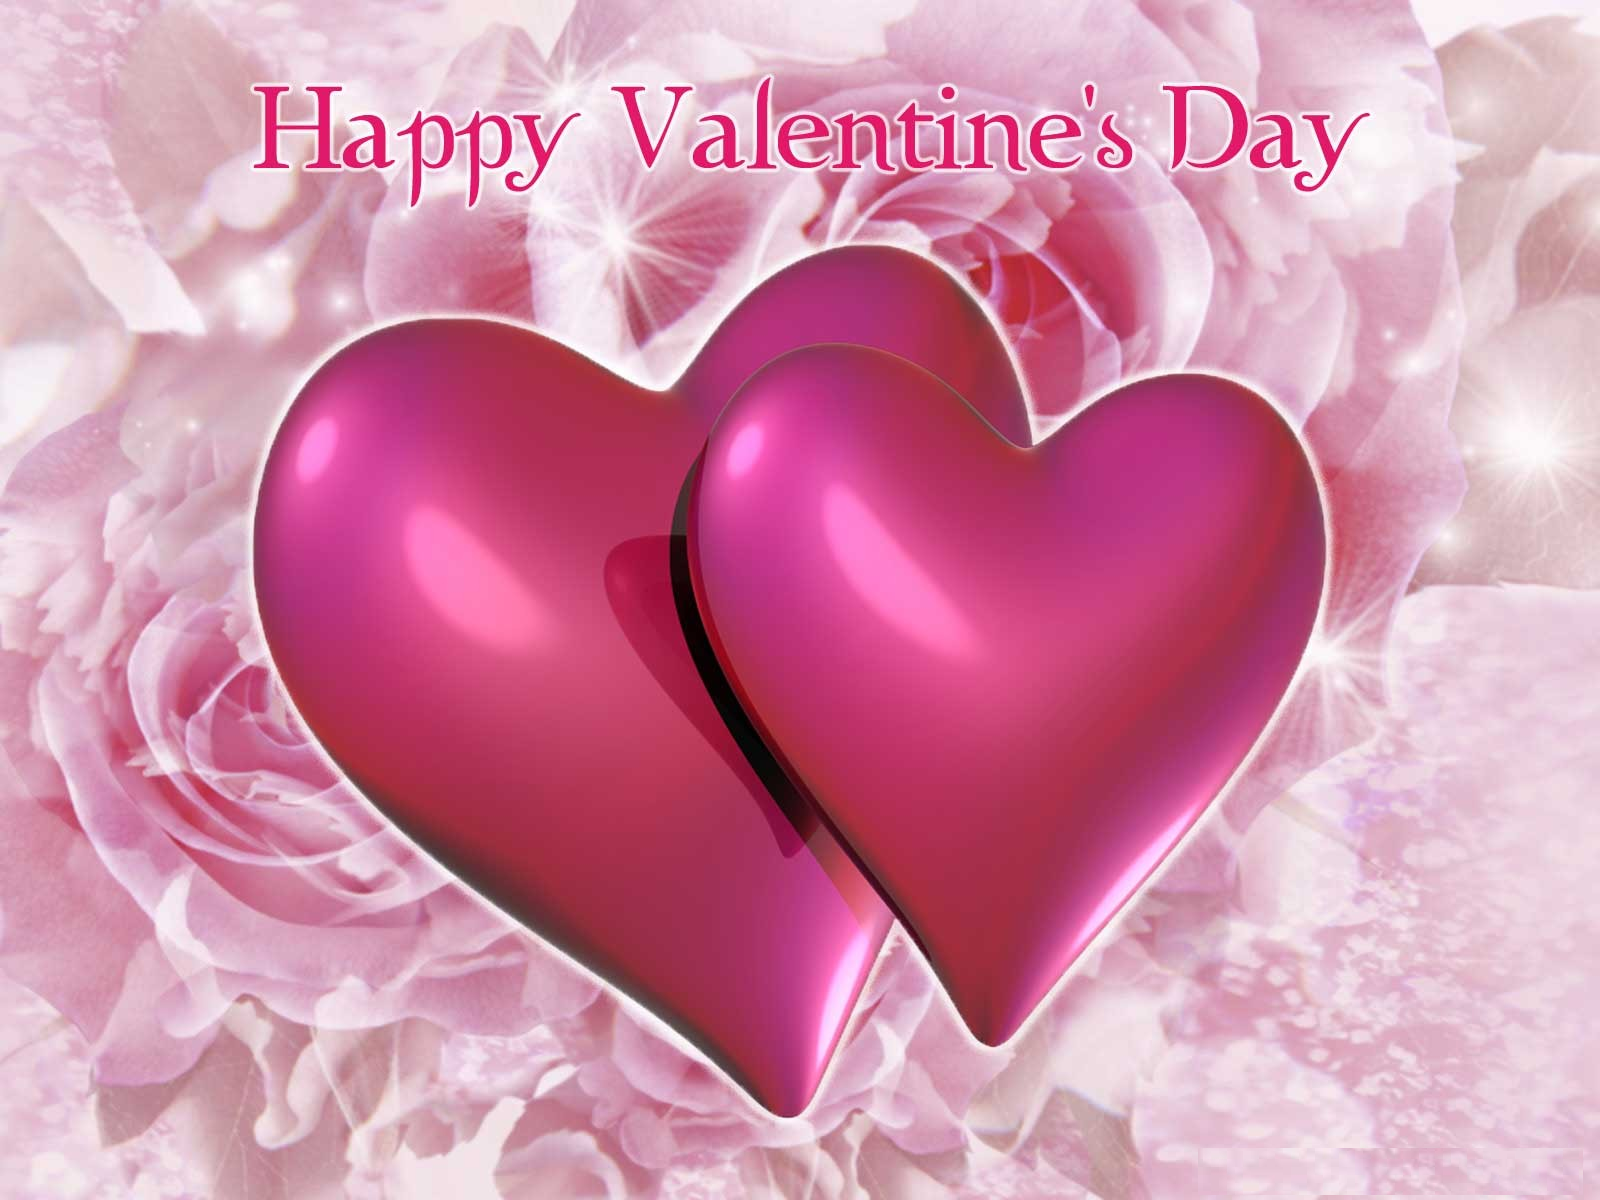 Valentine's Day Images for Whatsapp DP, Profile Wallpapers